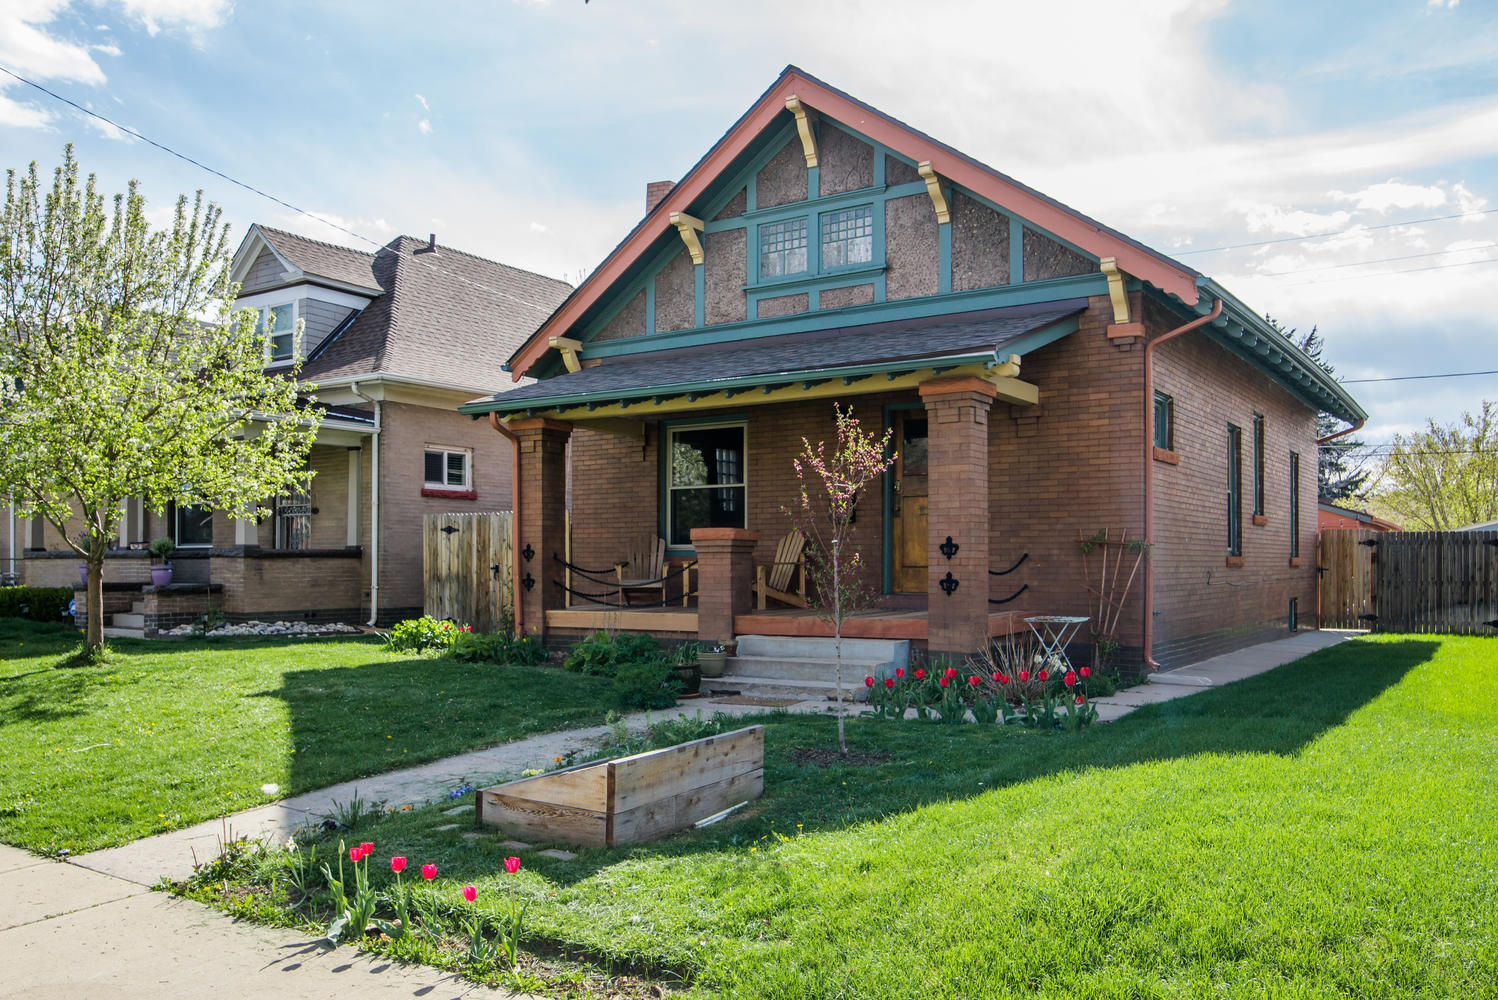 Single Family Home for Sale at Super cute Whittier Bungalow 3139 N Gaylord St Whittier, Denver, Colorado, 80205 United States